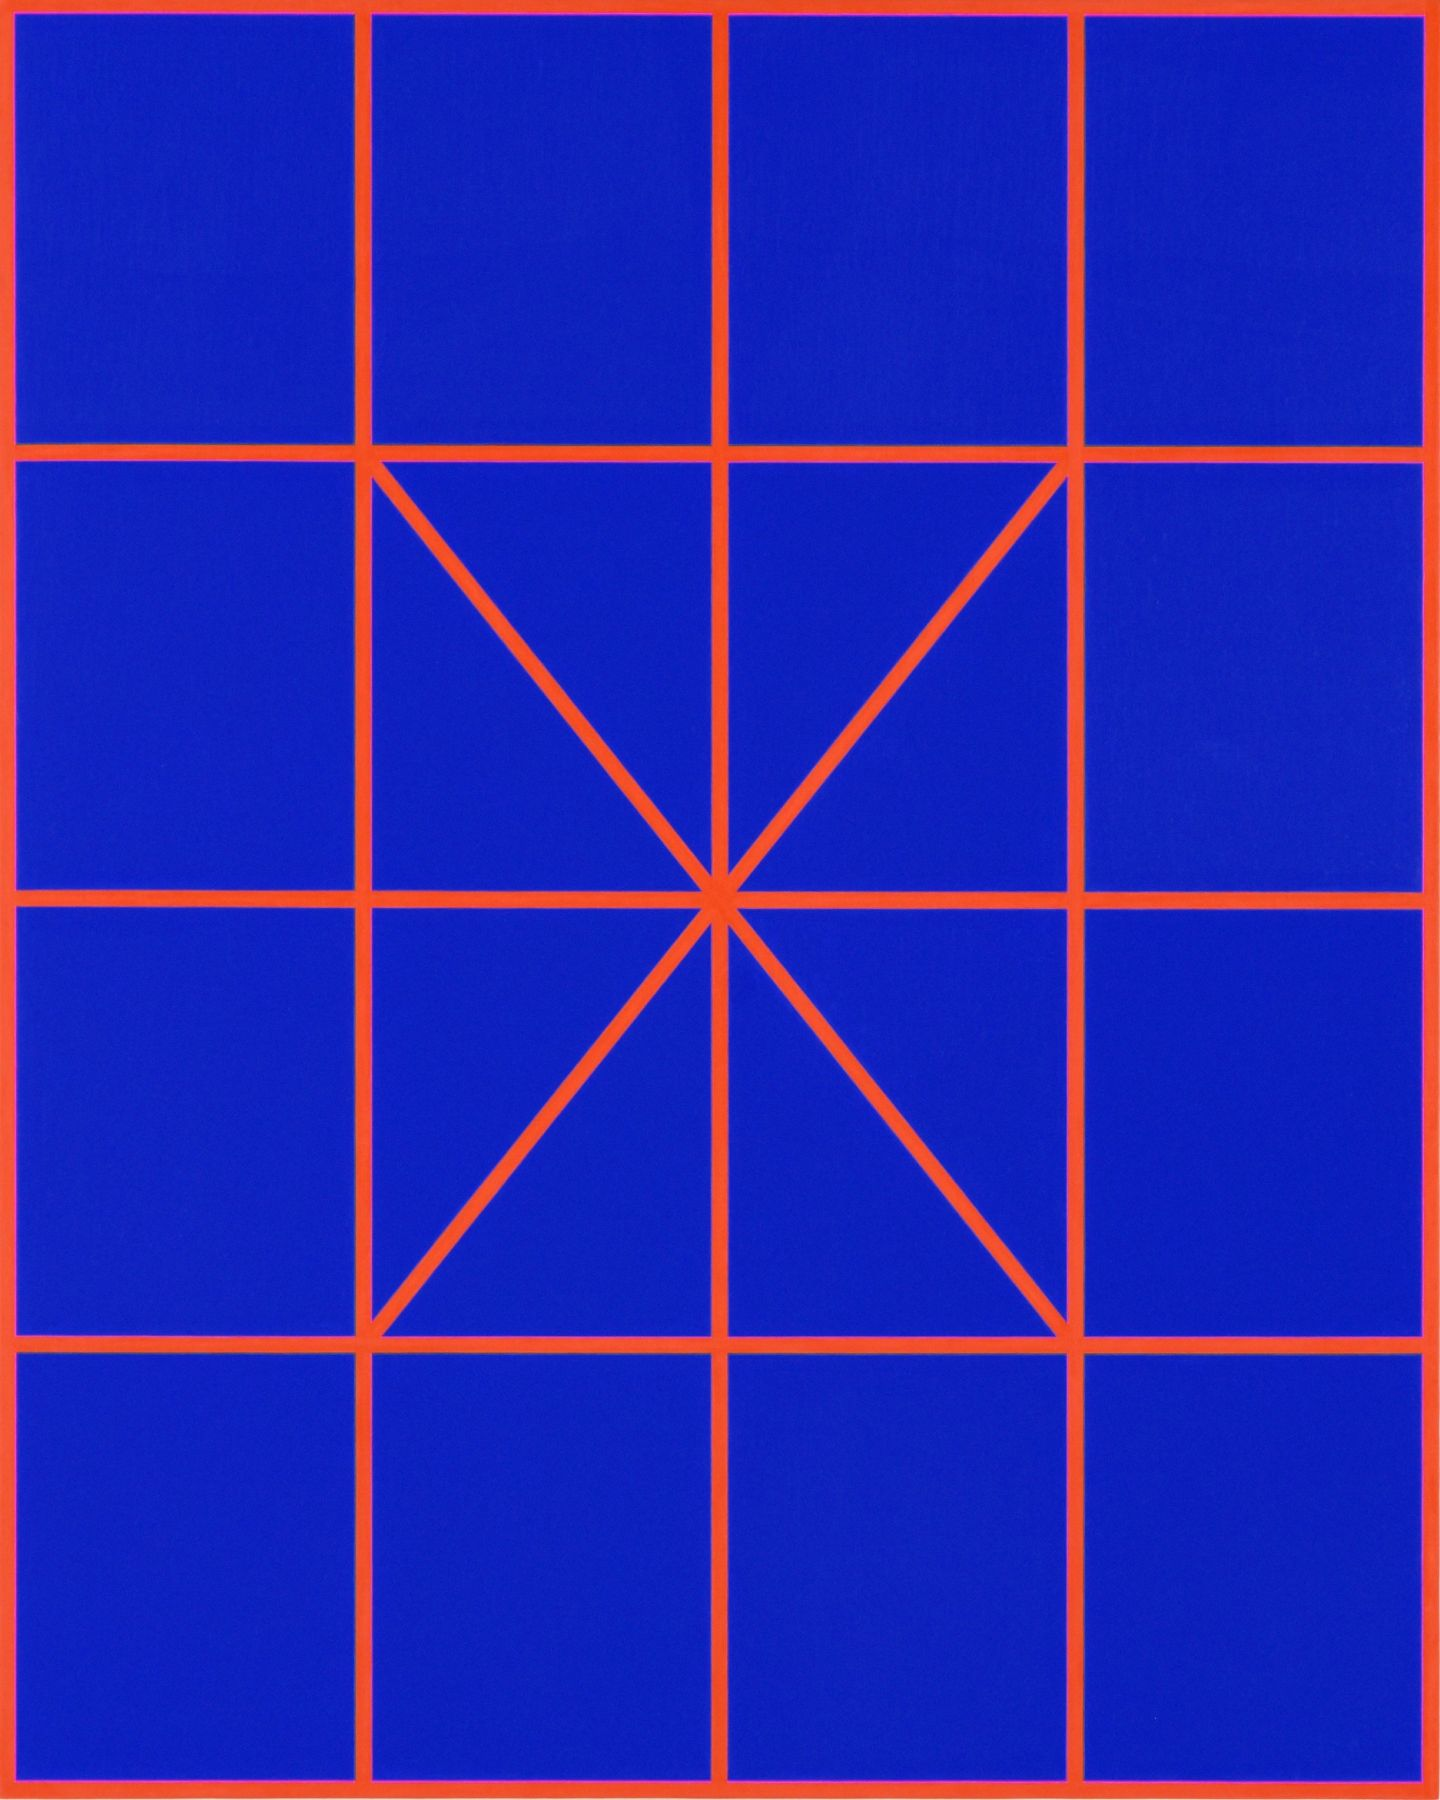 Cary Smith, Complex Diagonals #4 (blue-red), 2017